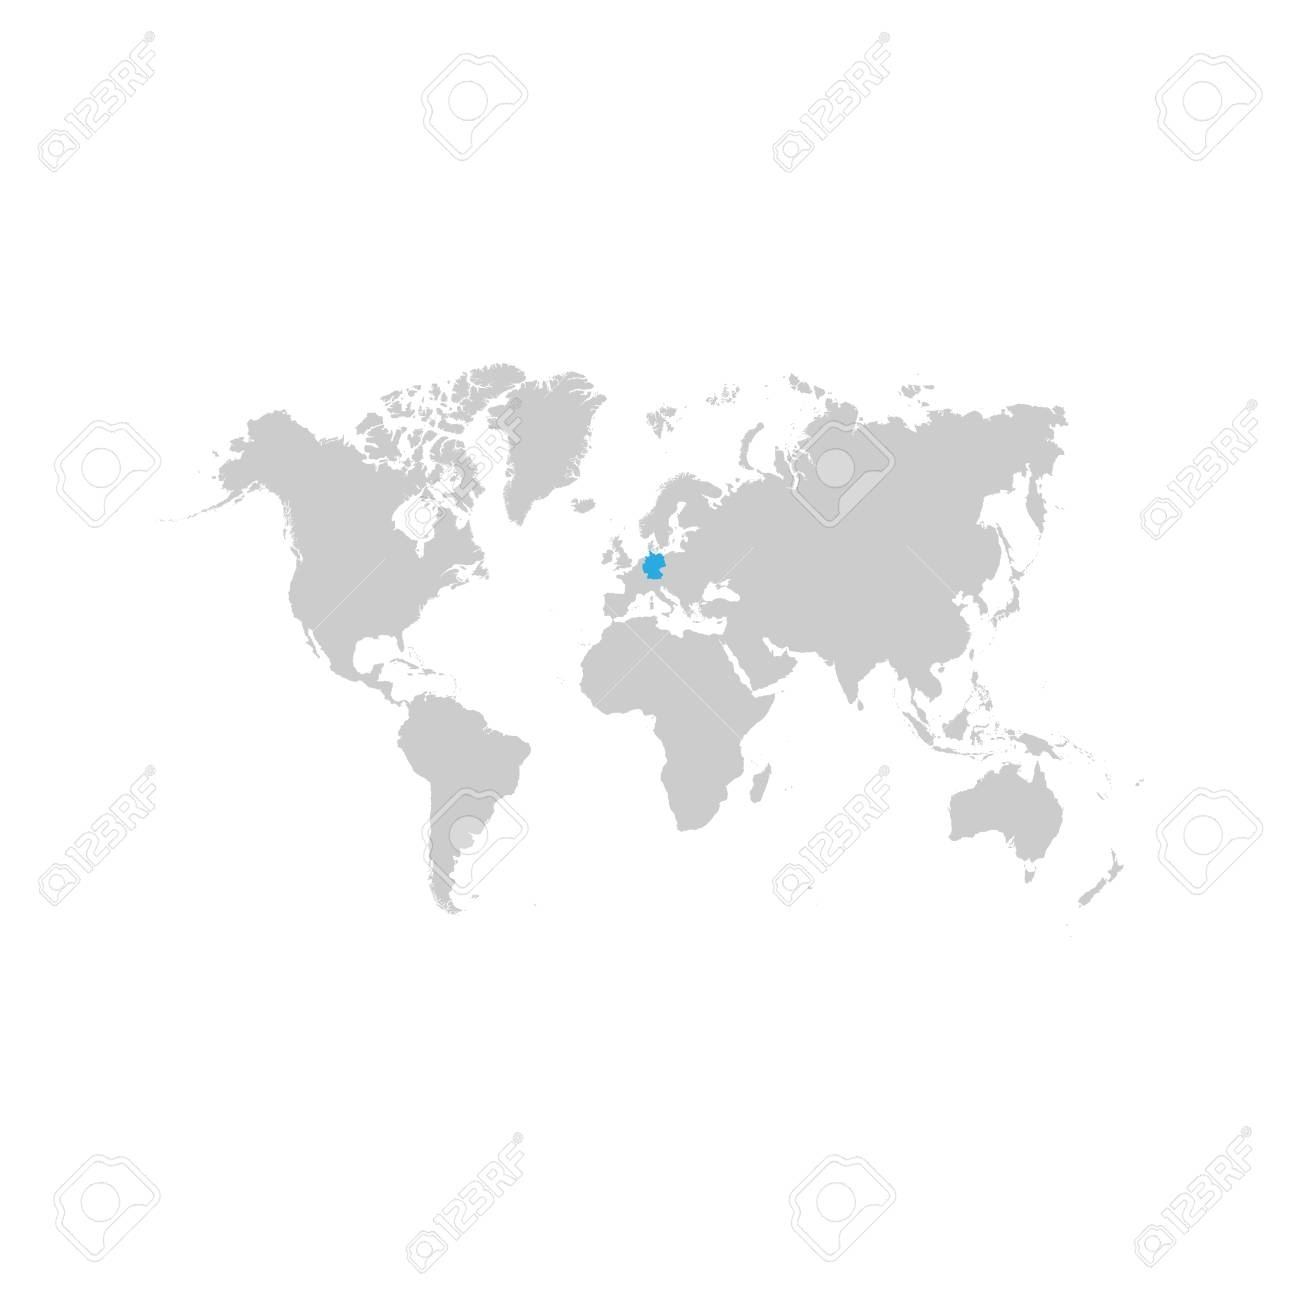 The Map Of Germany Is Highlighted In Blue On The World Map intended for World Map With Germany Highlighted